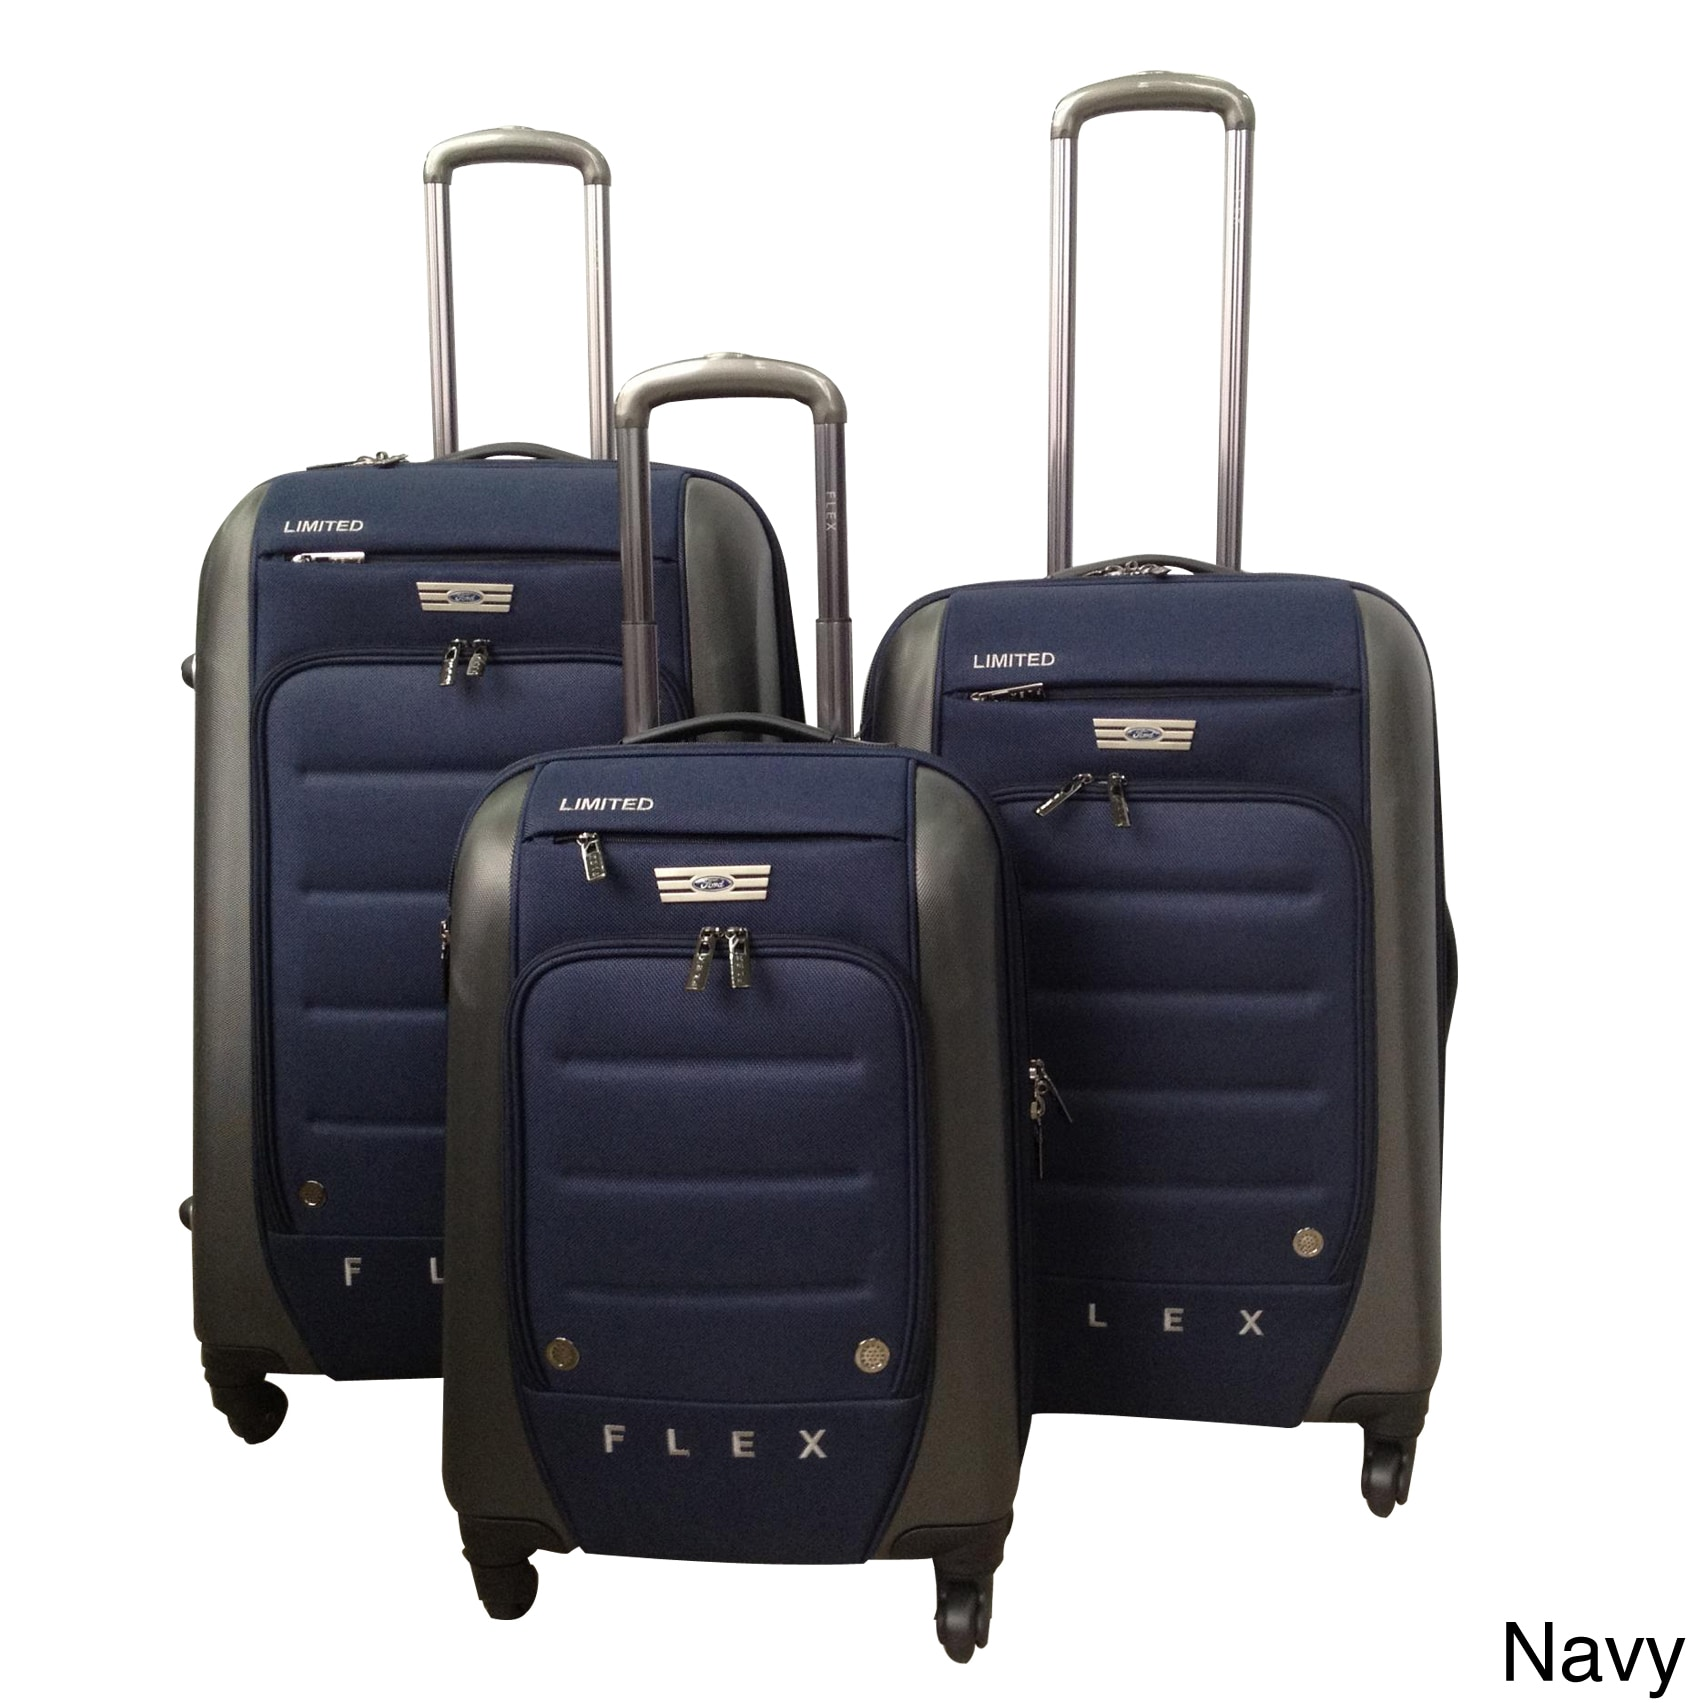 Traveler's Club Luggage Traveler's Club Ford Flex Series 3-piece Expandable Spinner Hybrid Luggage Set at Sears.com